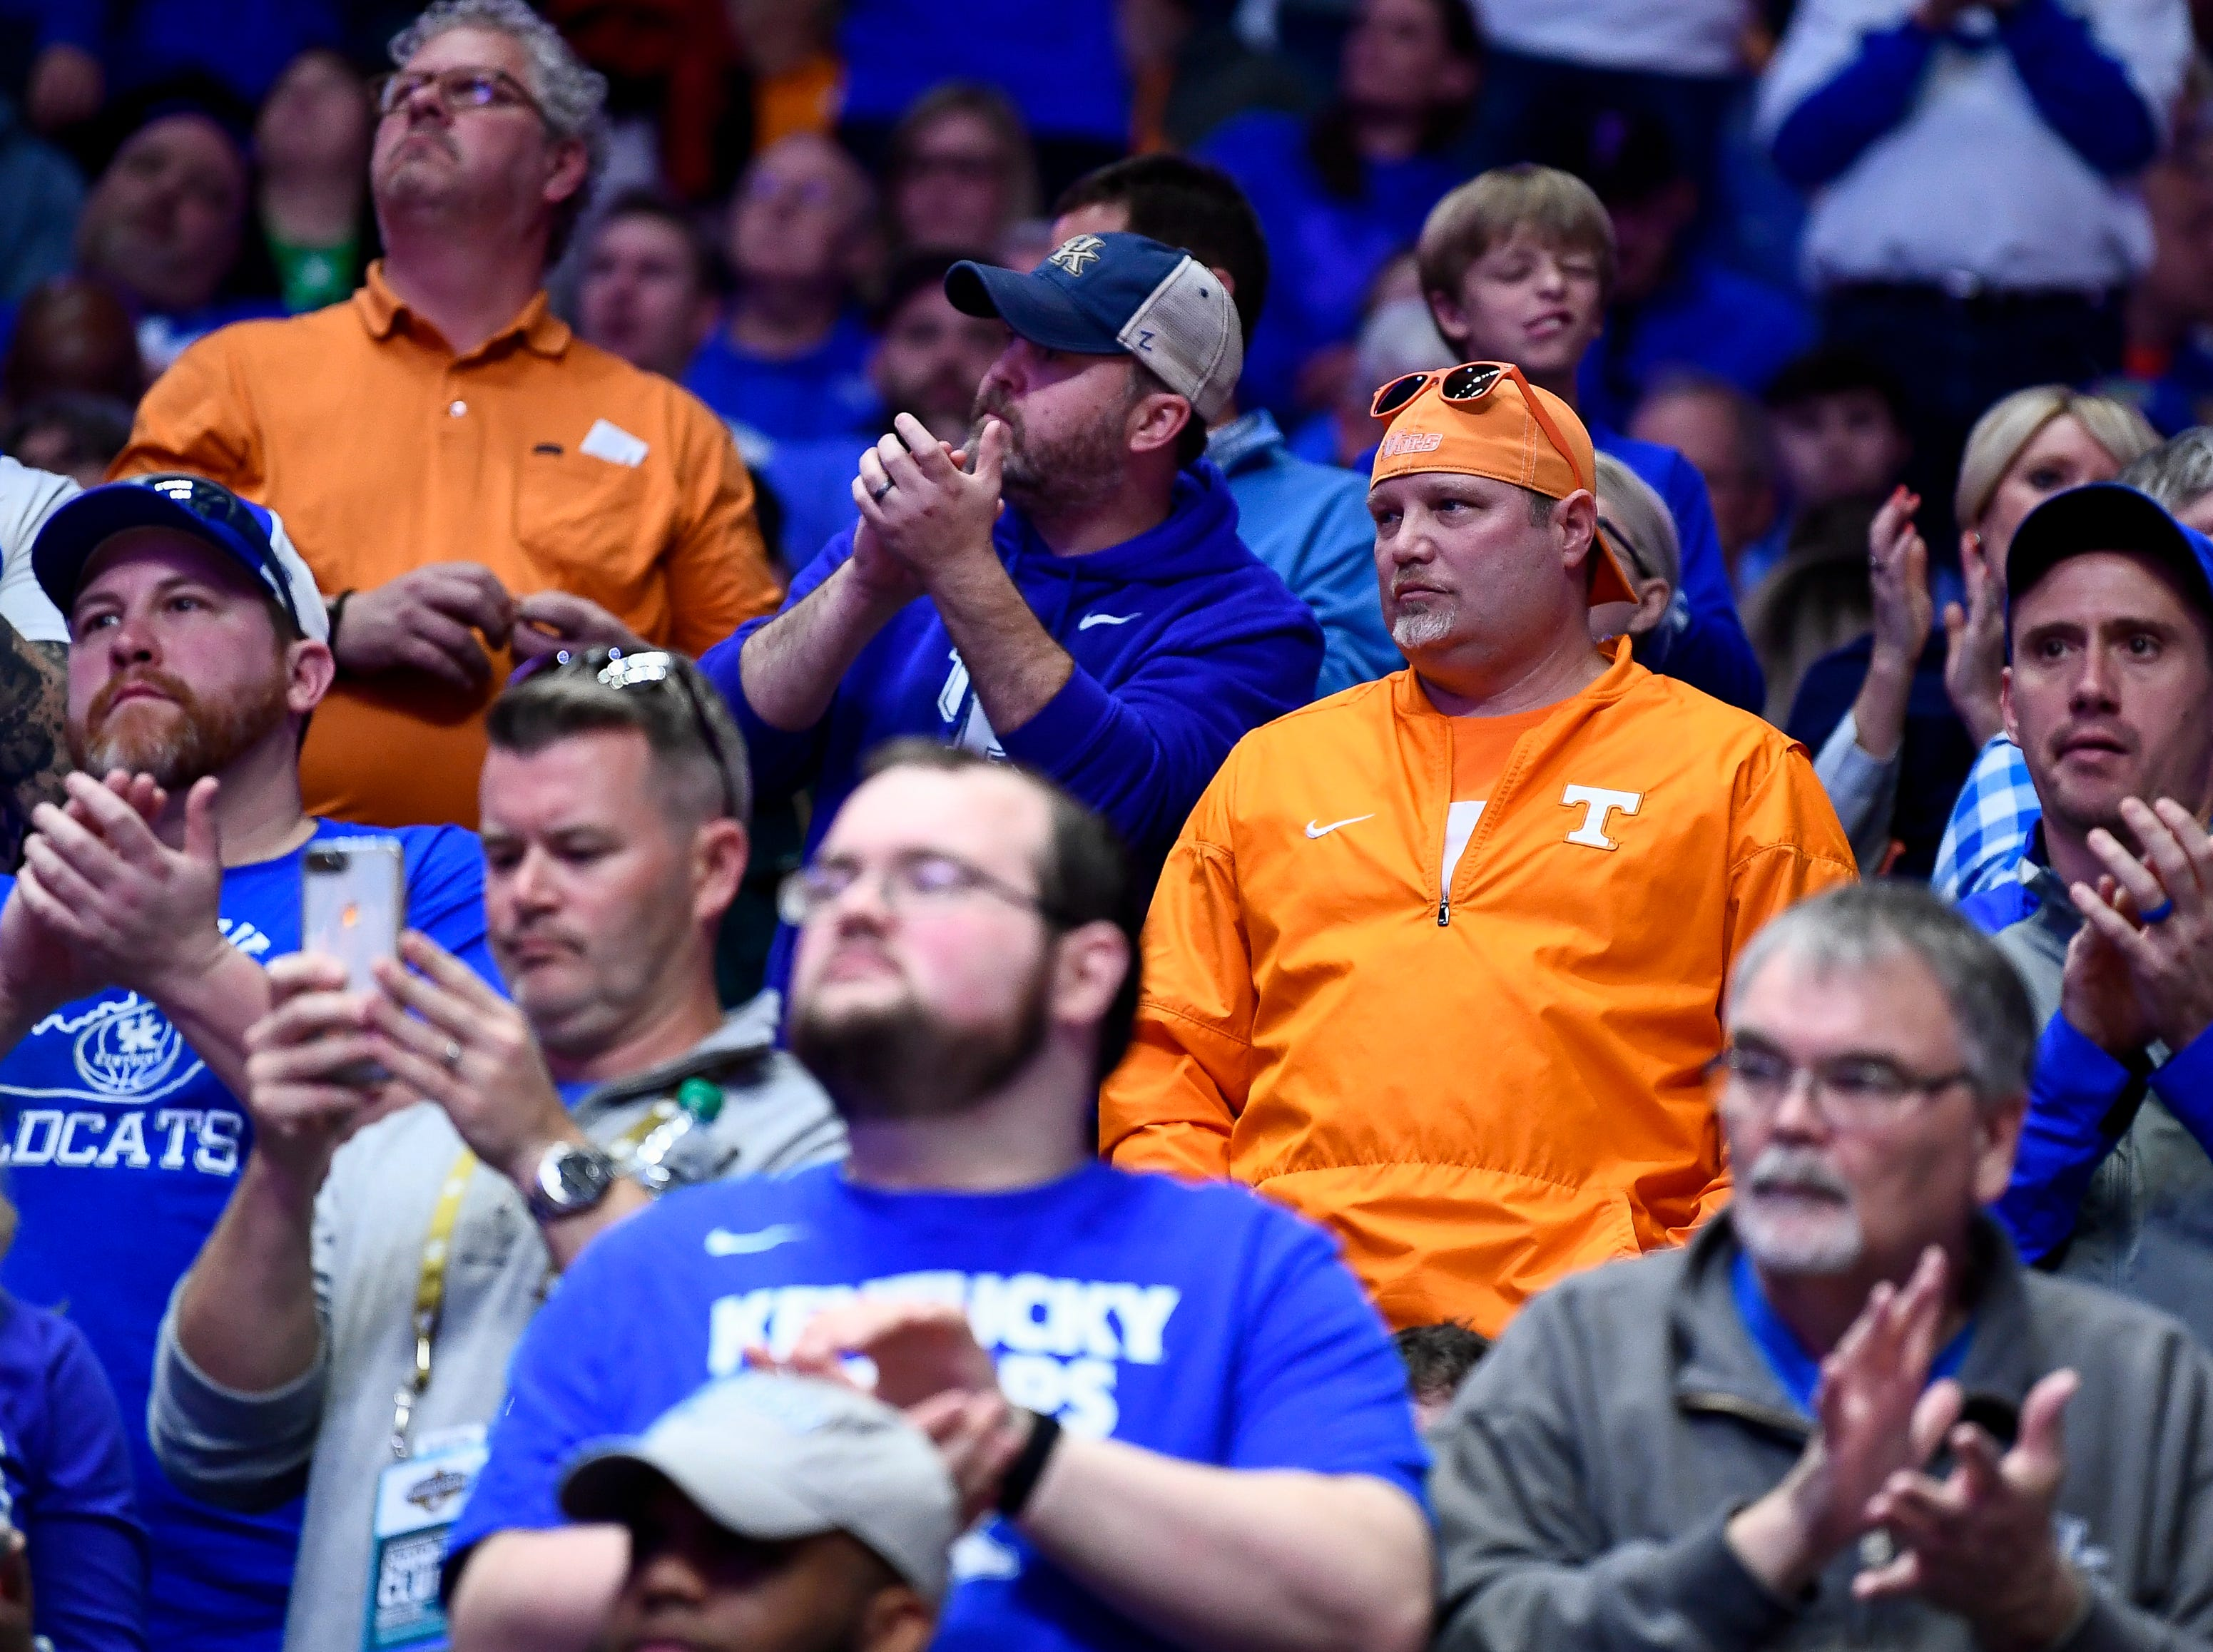 Kentucky and Tennessee fans watch the first half of the SEC Men's Basketball Tournament semifinal game at Bridgestone Arena in Nashville, Tenn., Saturday, March 16, 2019.